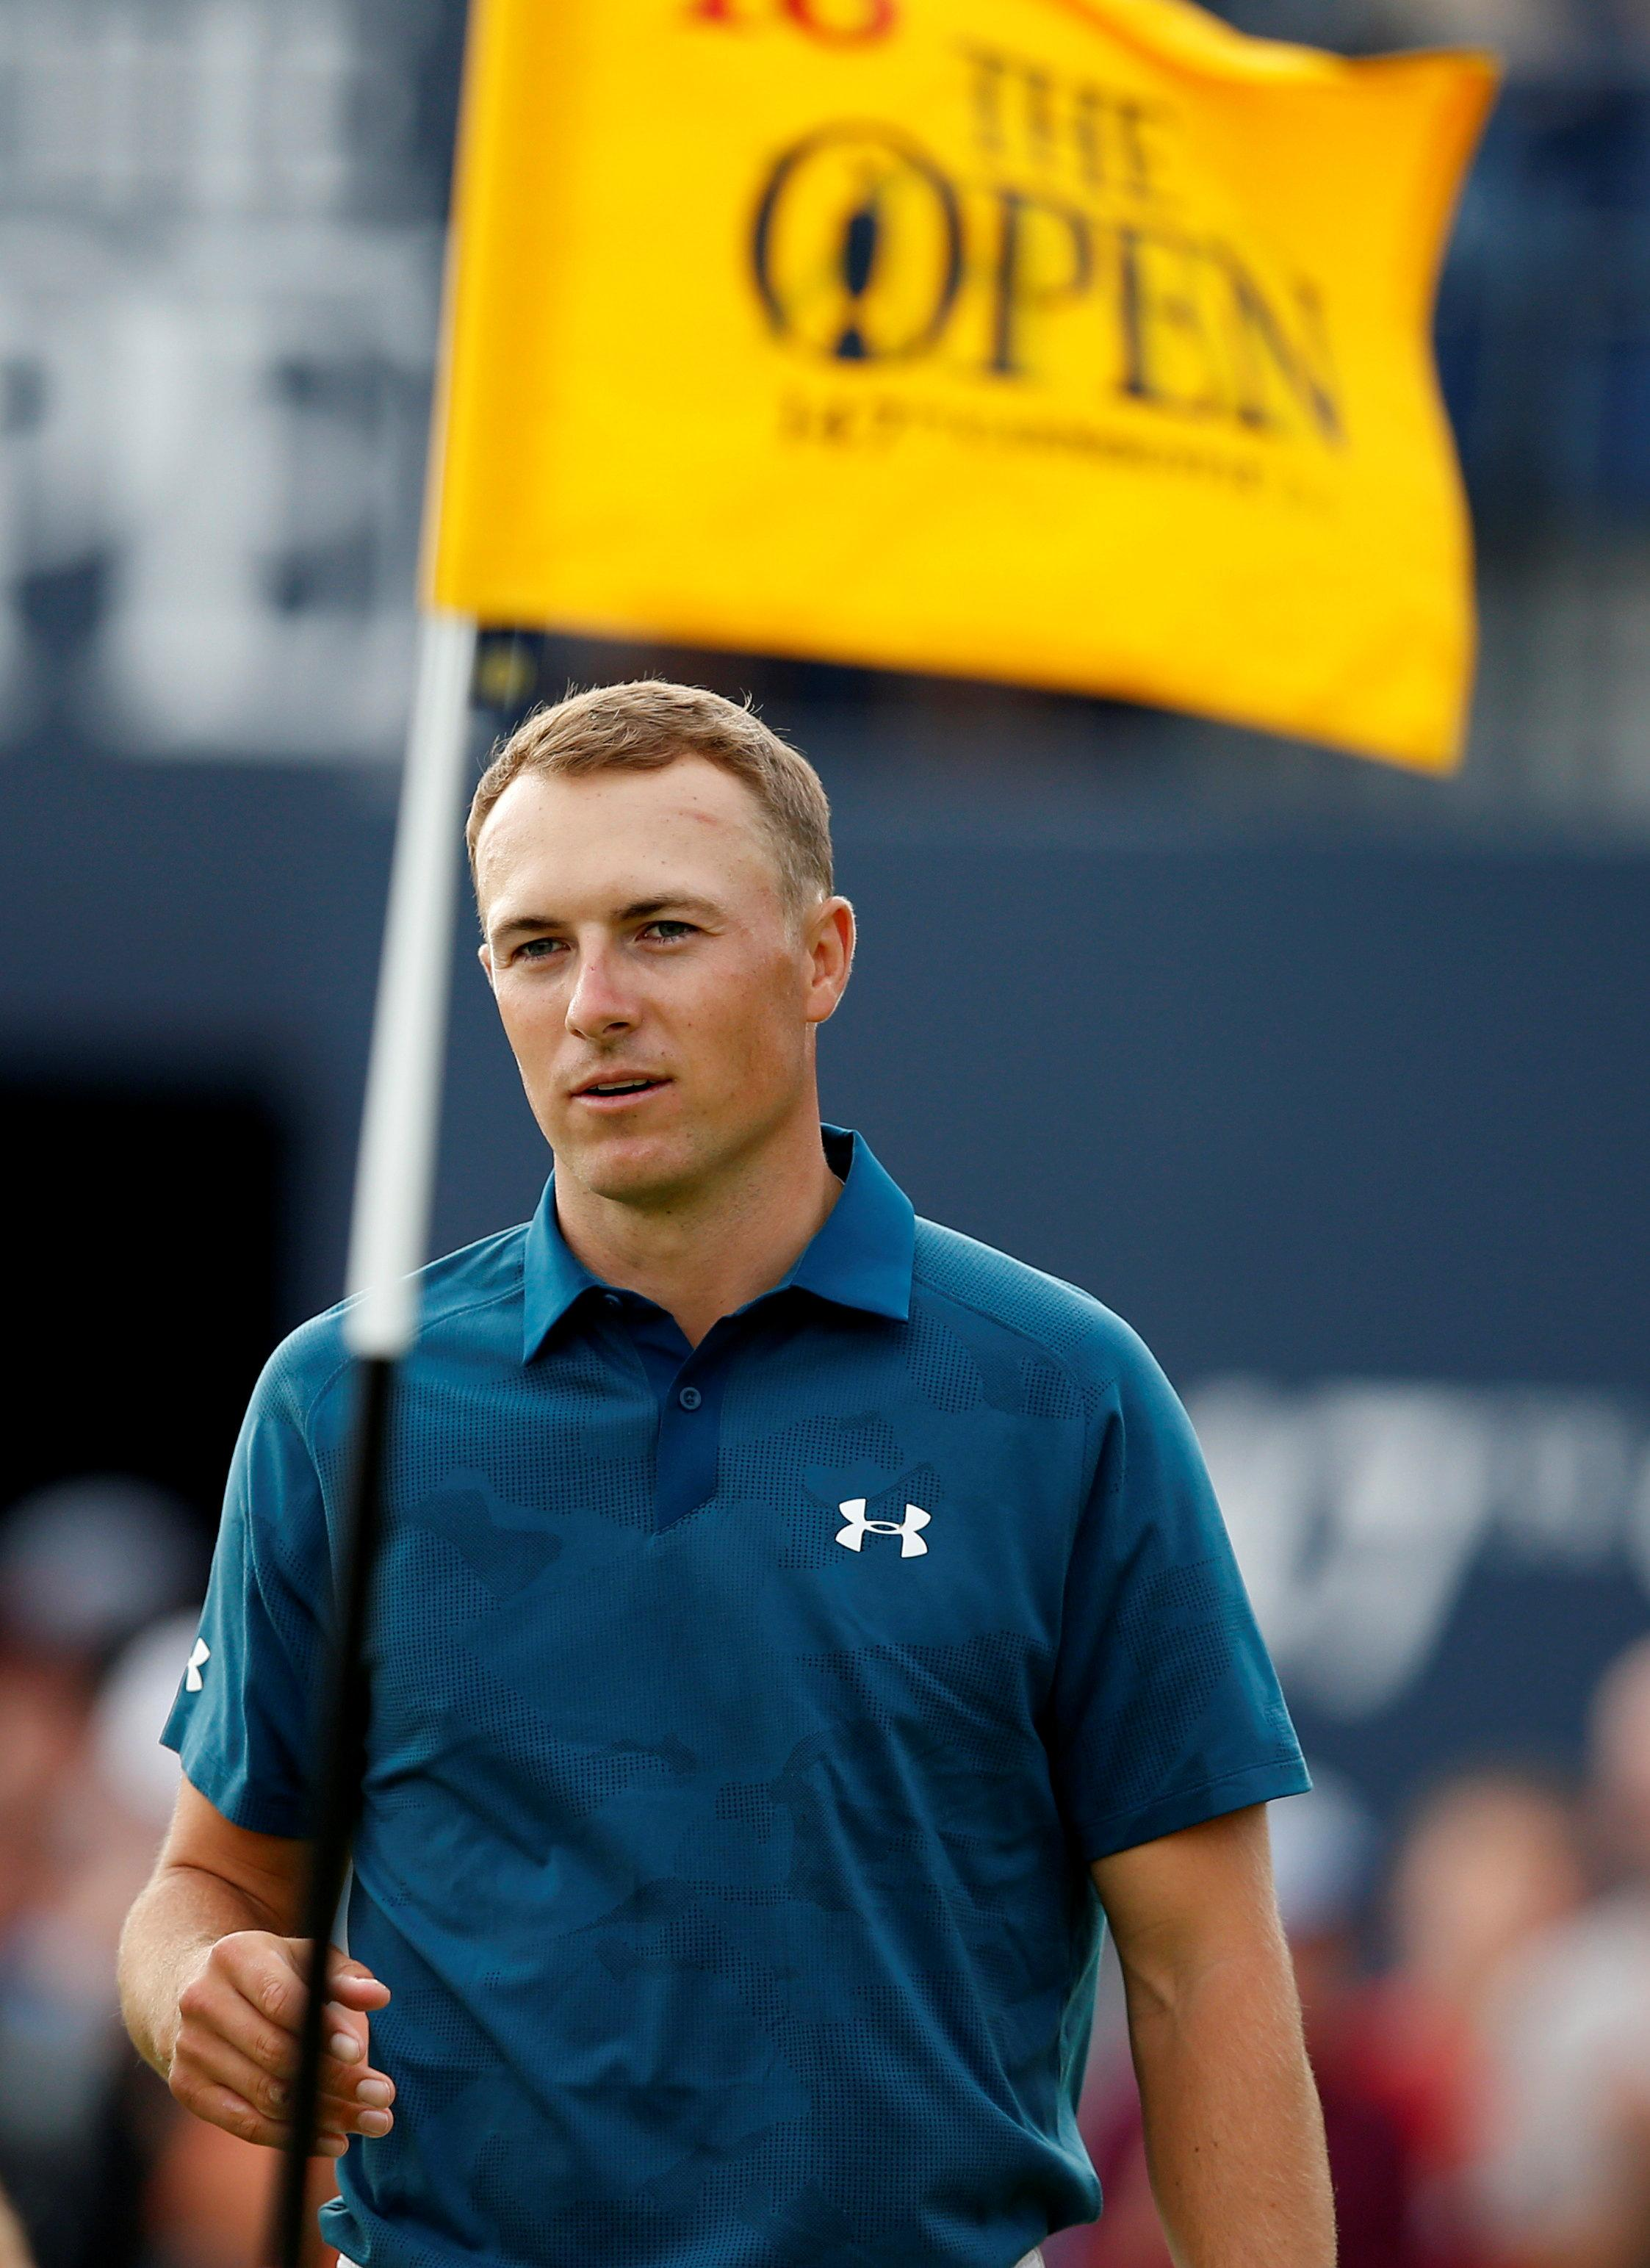 Jordan Spieth laughed off his 'very British' haircut after trimming the competition down to size at the Open